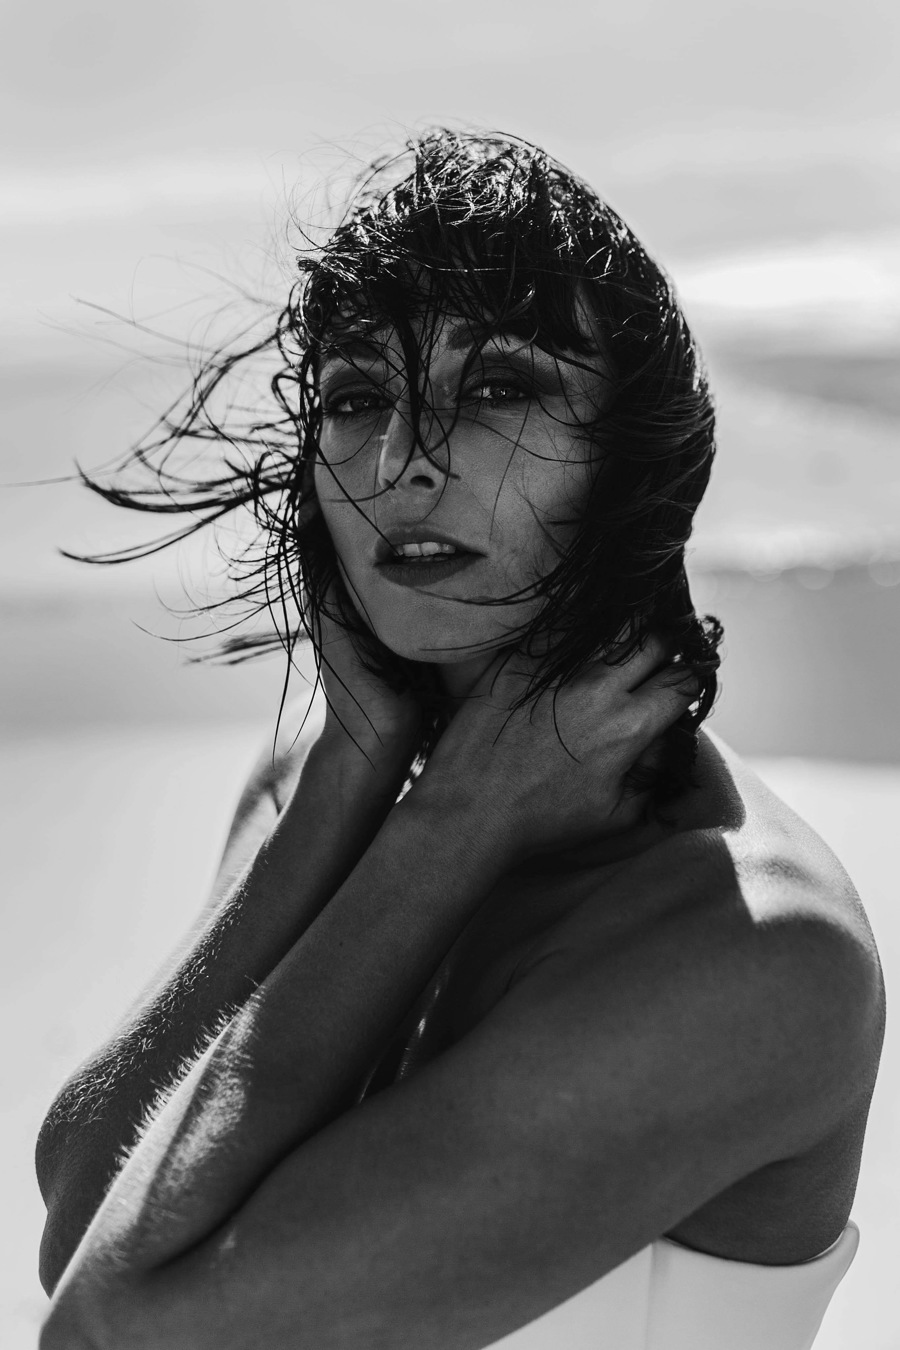 Beach vibes / Photography by Charpulllanphotos, Model Marie Jean Saxton / Uploaded 18th September 2020 @ 08:51 PM